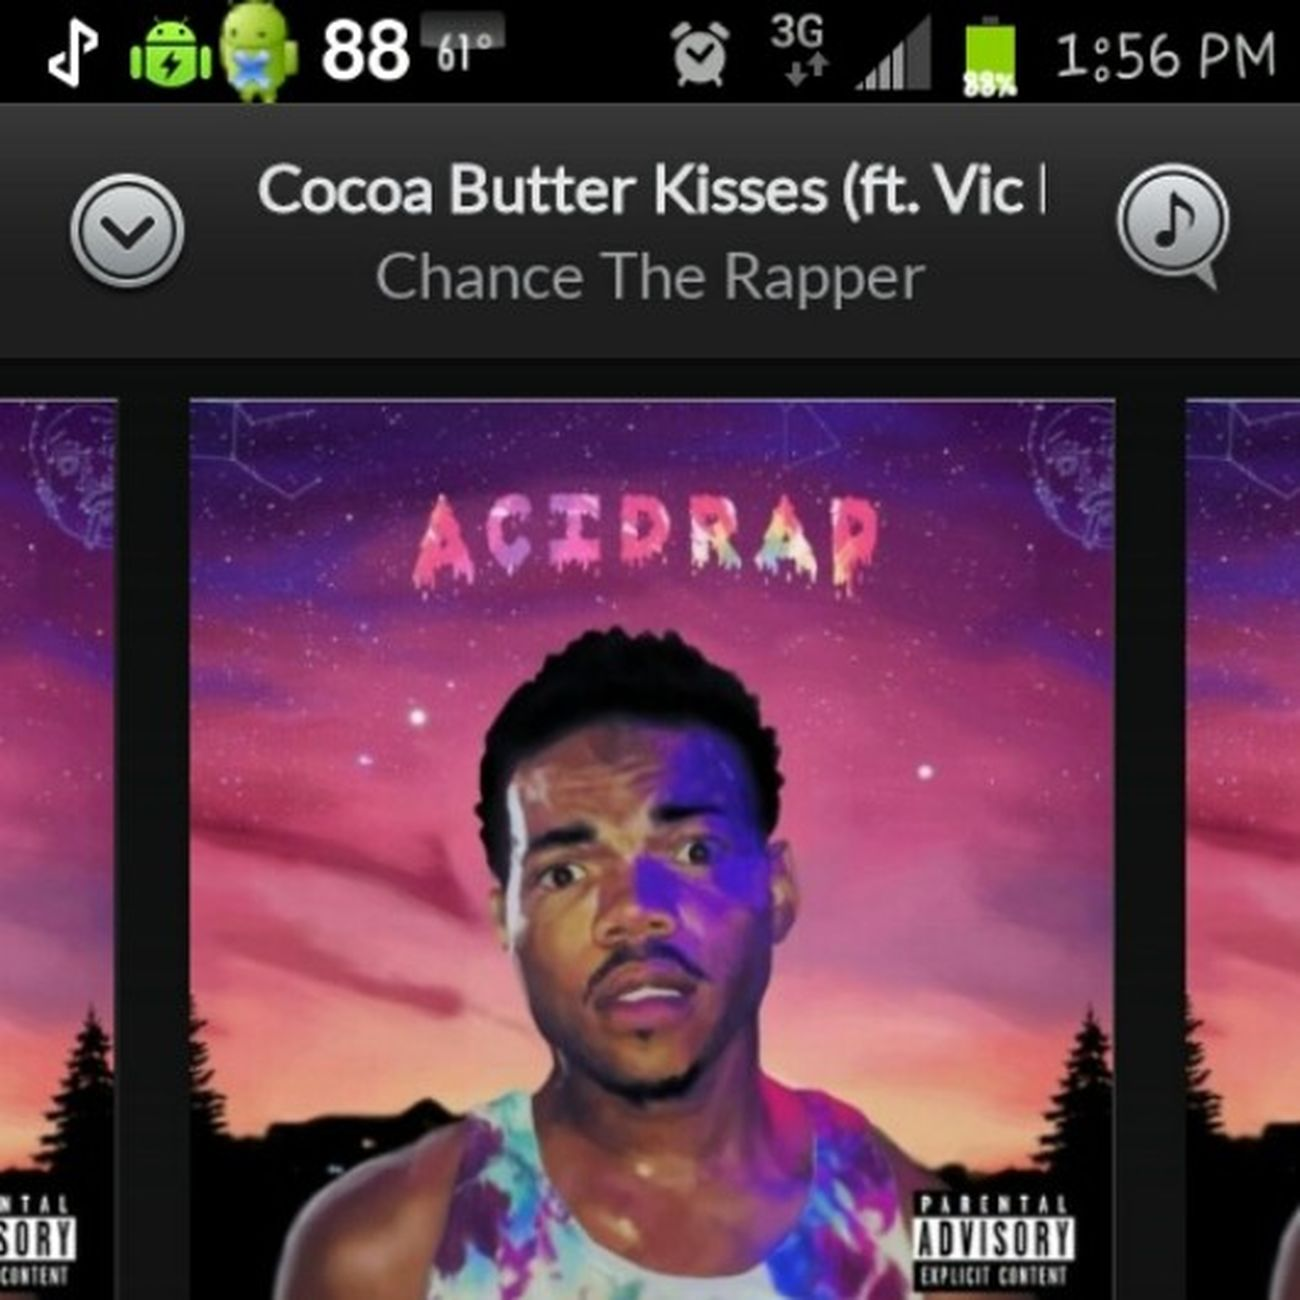 I Miss My Cocoa Butter Kisses